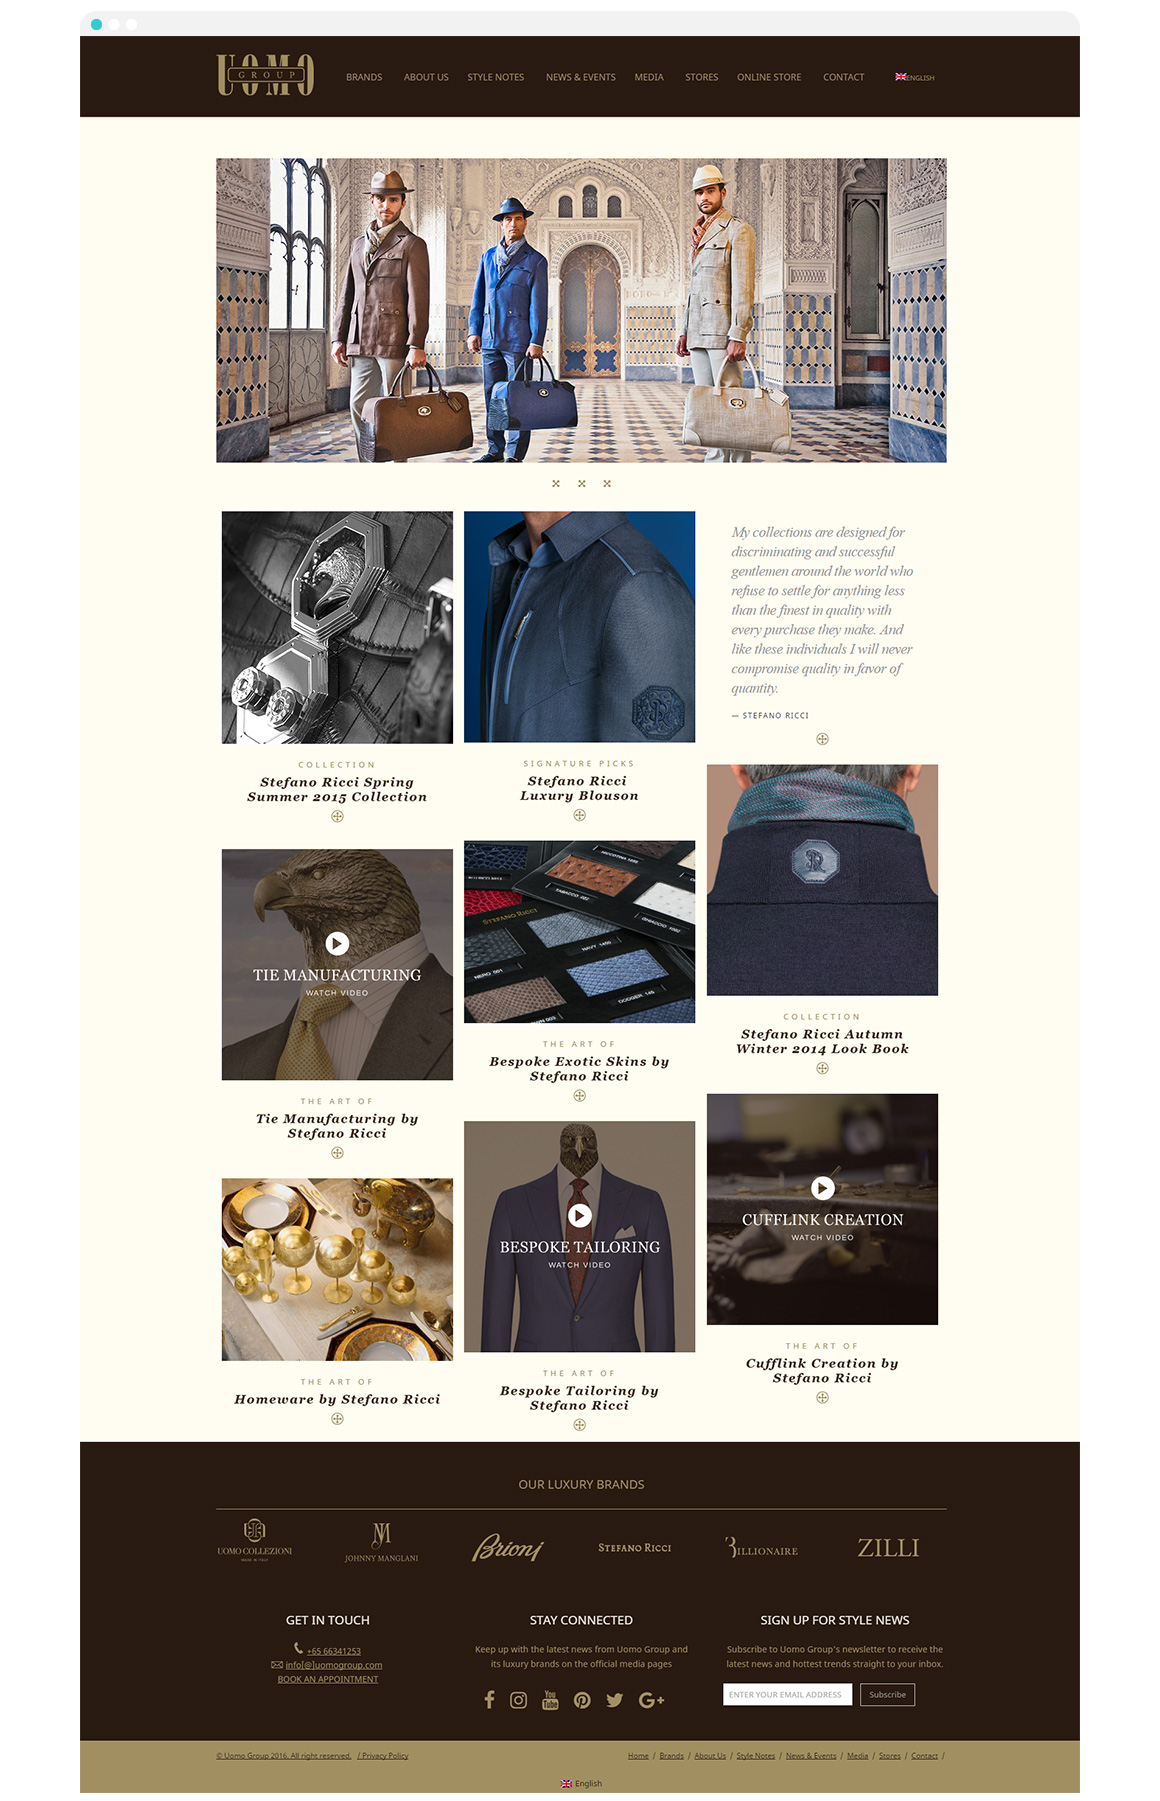 Uomo Group Luxury Menswear Website Design and Development - website screenshot